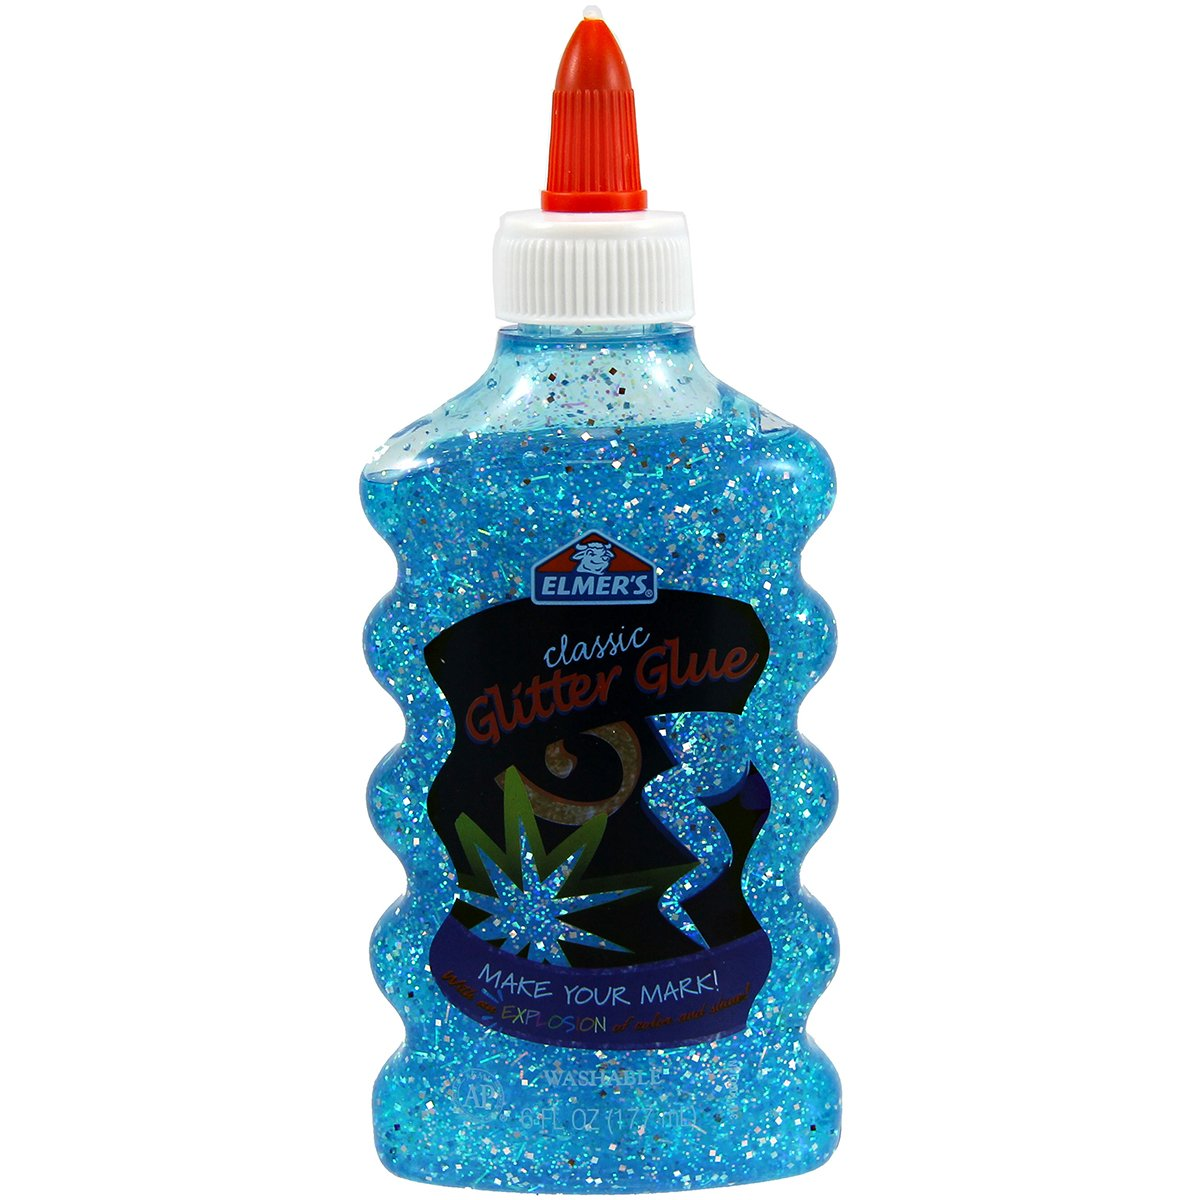 Elmer's Liquid Glitter Glue, Washable, Blue, 6 Ounces, 1 Count - Great For Making Slime